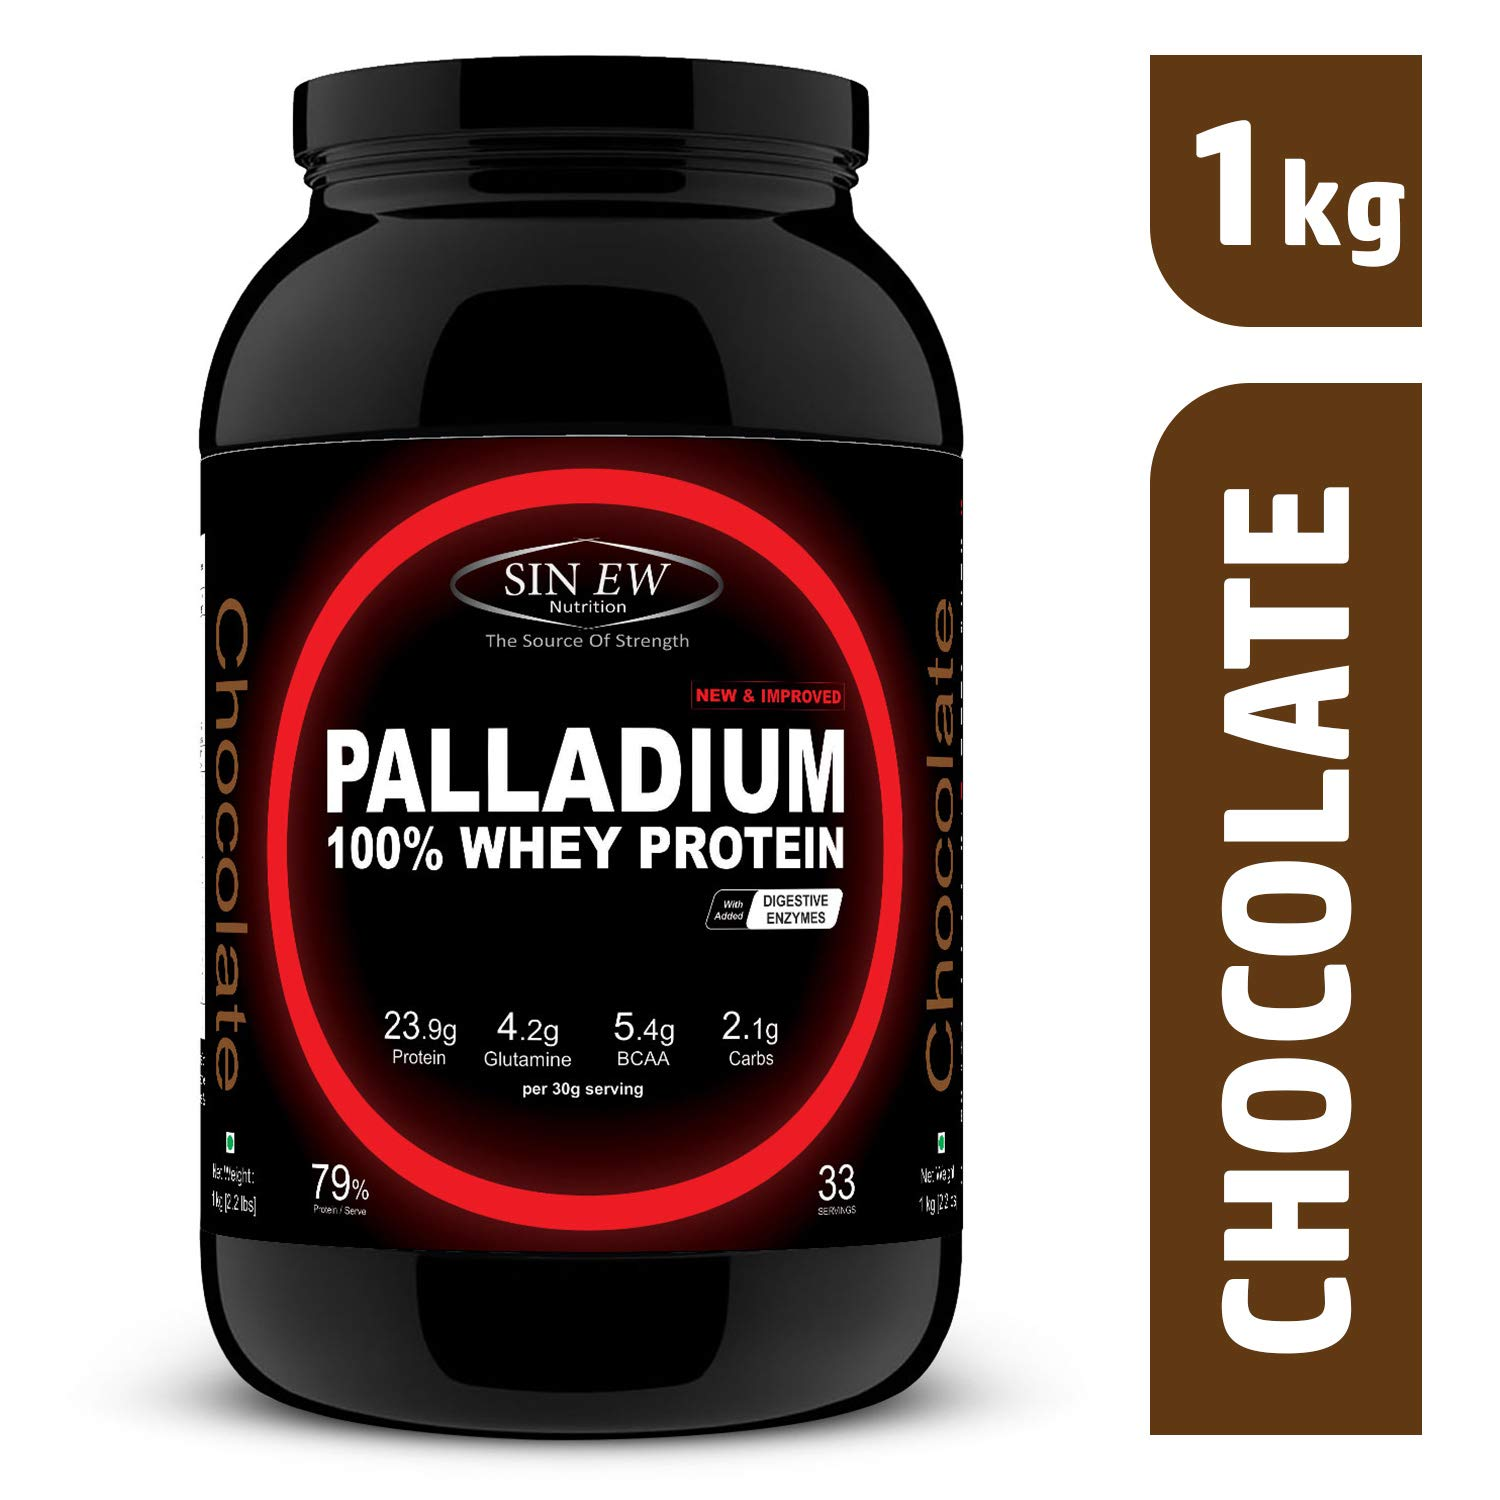 Sinew Nutrition Palladium Whey Protein with Digestive